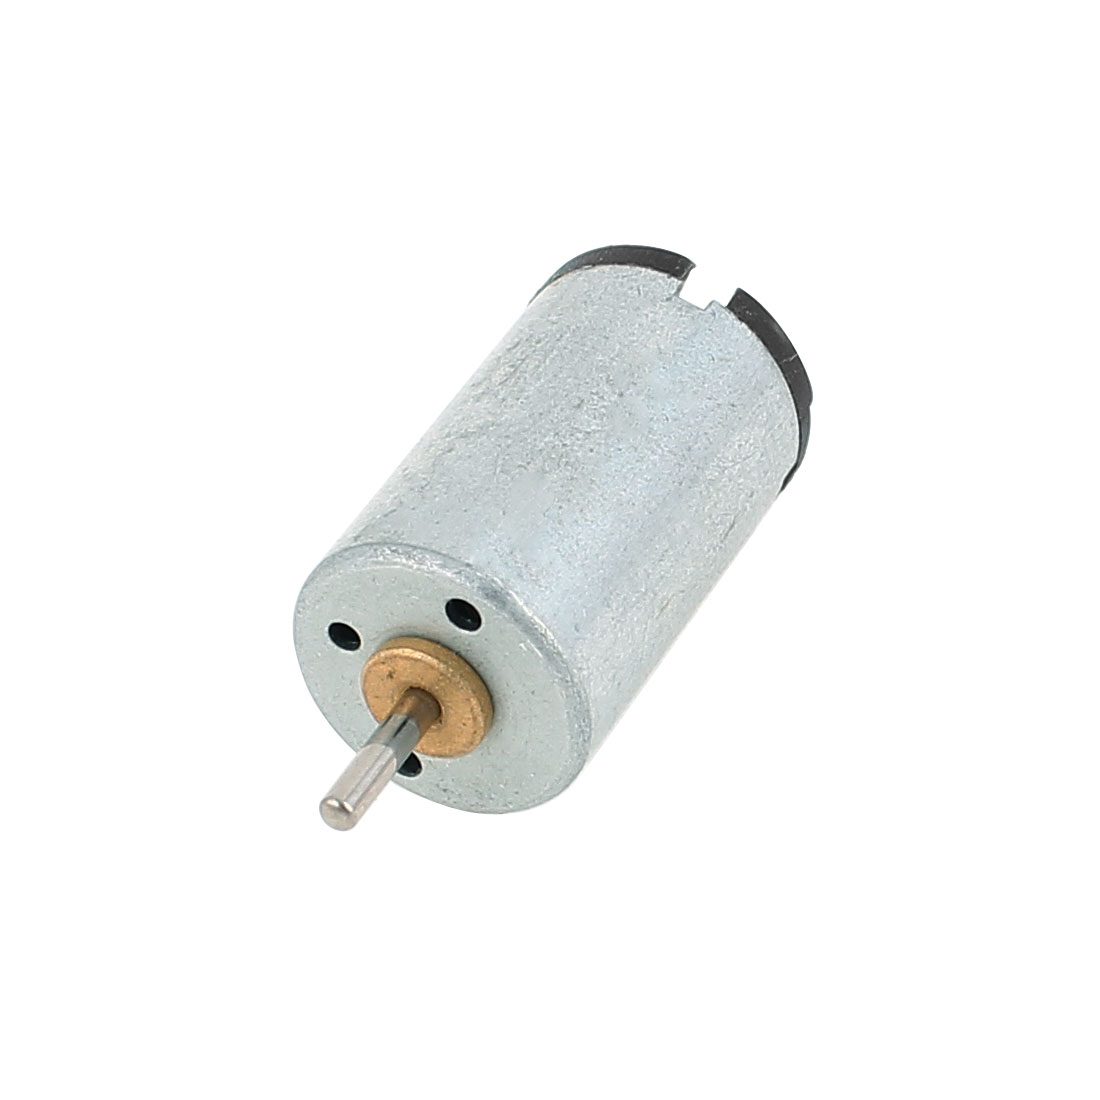 DC 6V-12V 25000RPM Speed 1.5mm Shaft 12mm Dia Cylindrical Electric Micro Motor